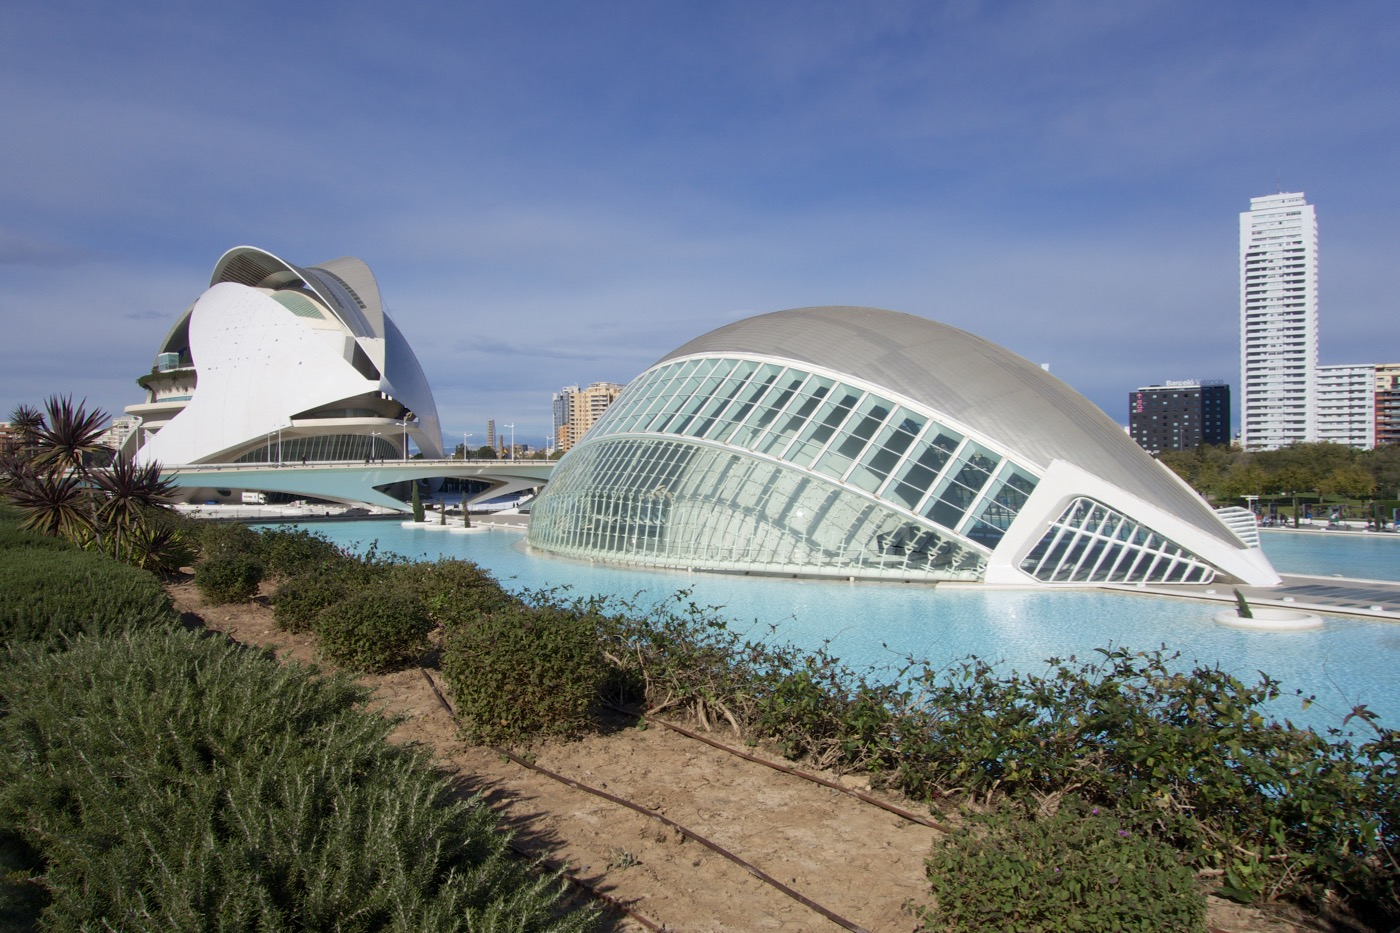 Photo 2 from Valencia